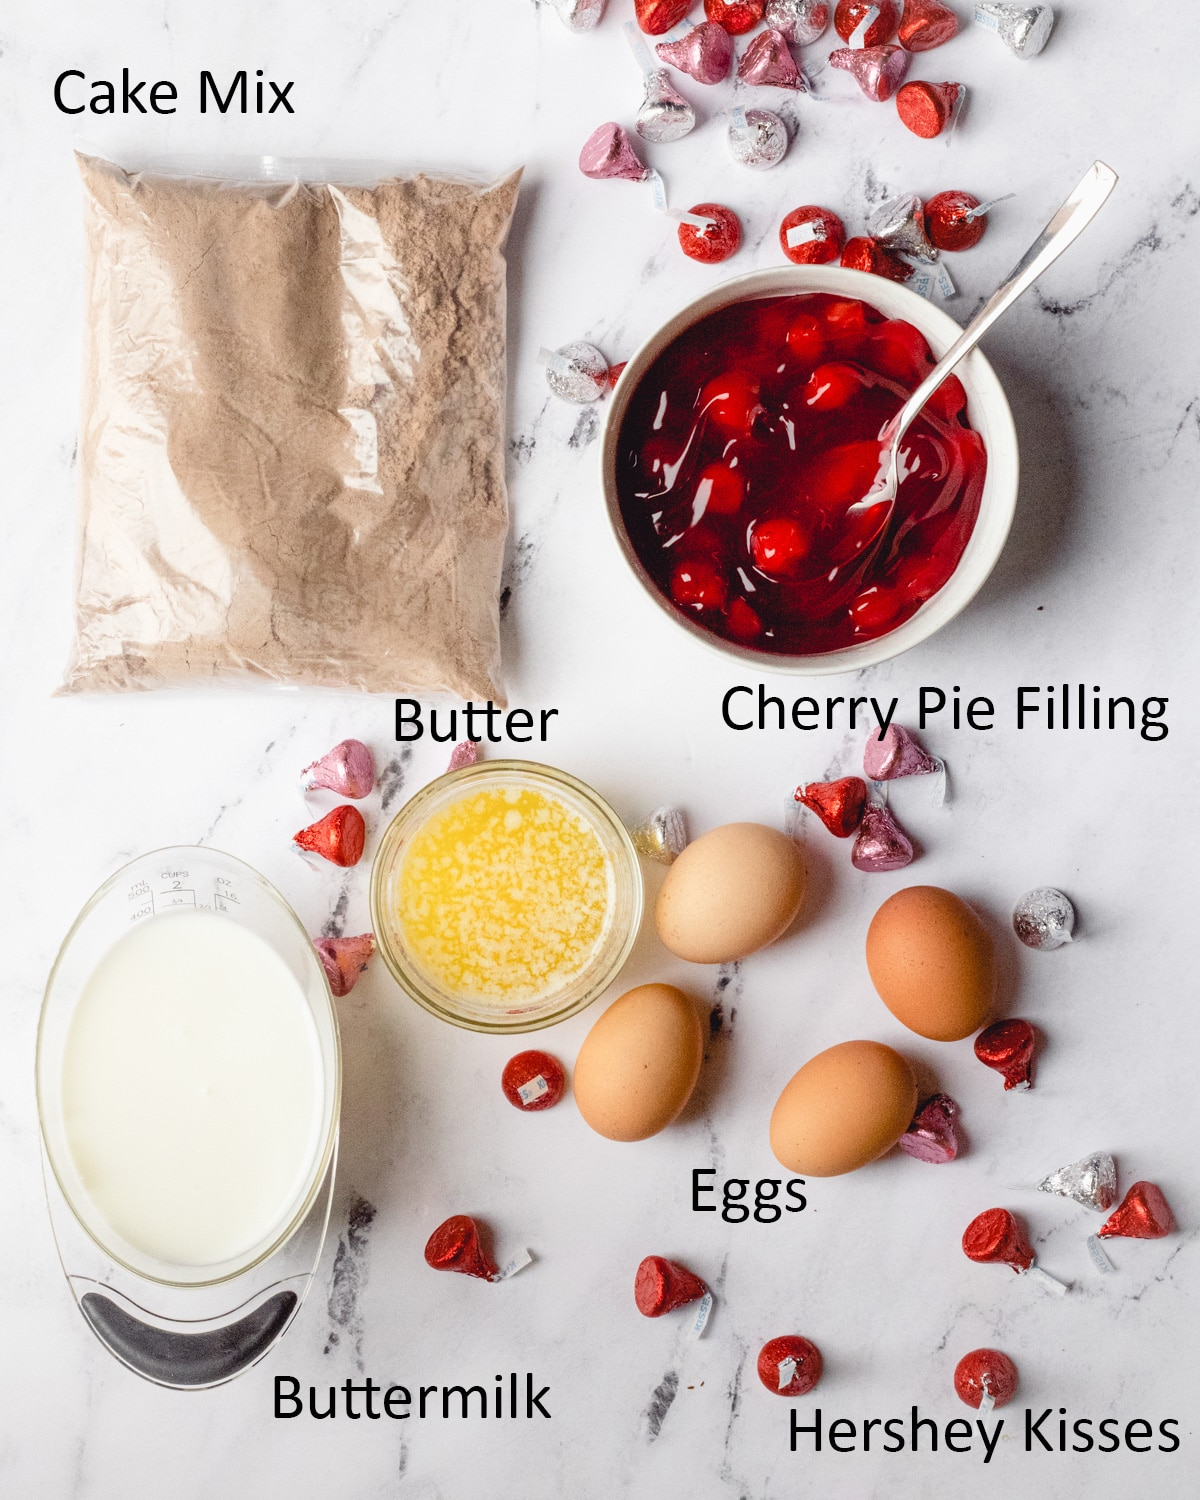 Cupcake ingredients: cake mix, cherry pie filling, butter, eggs,  buttermilk, Hershey kisses